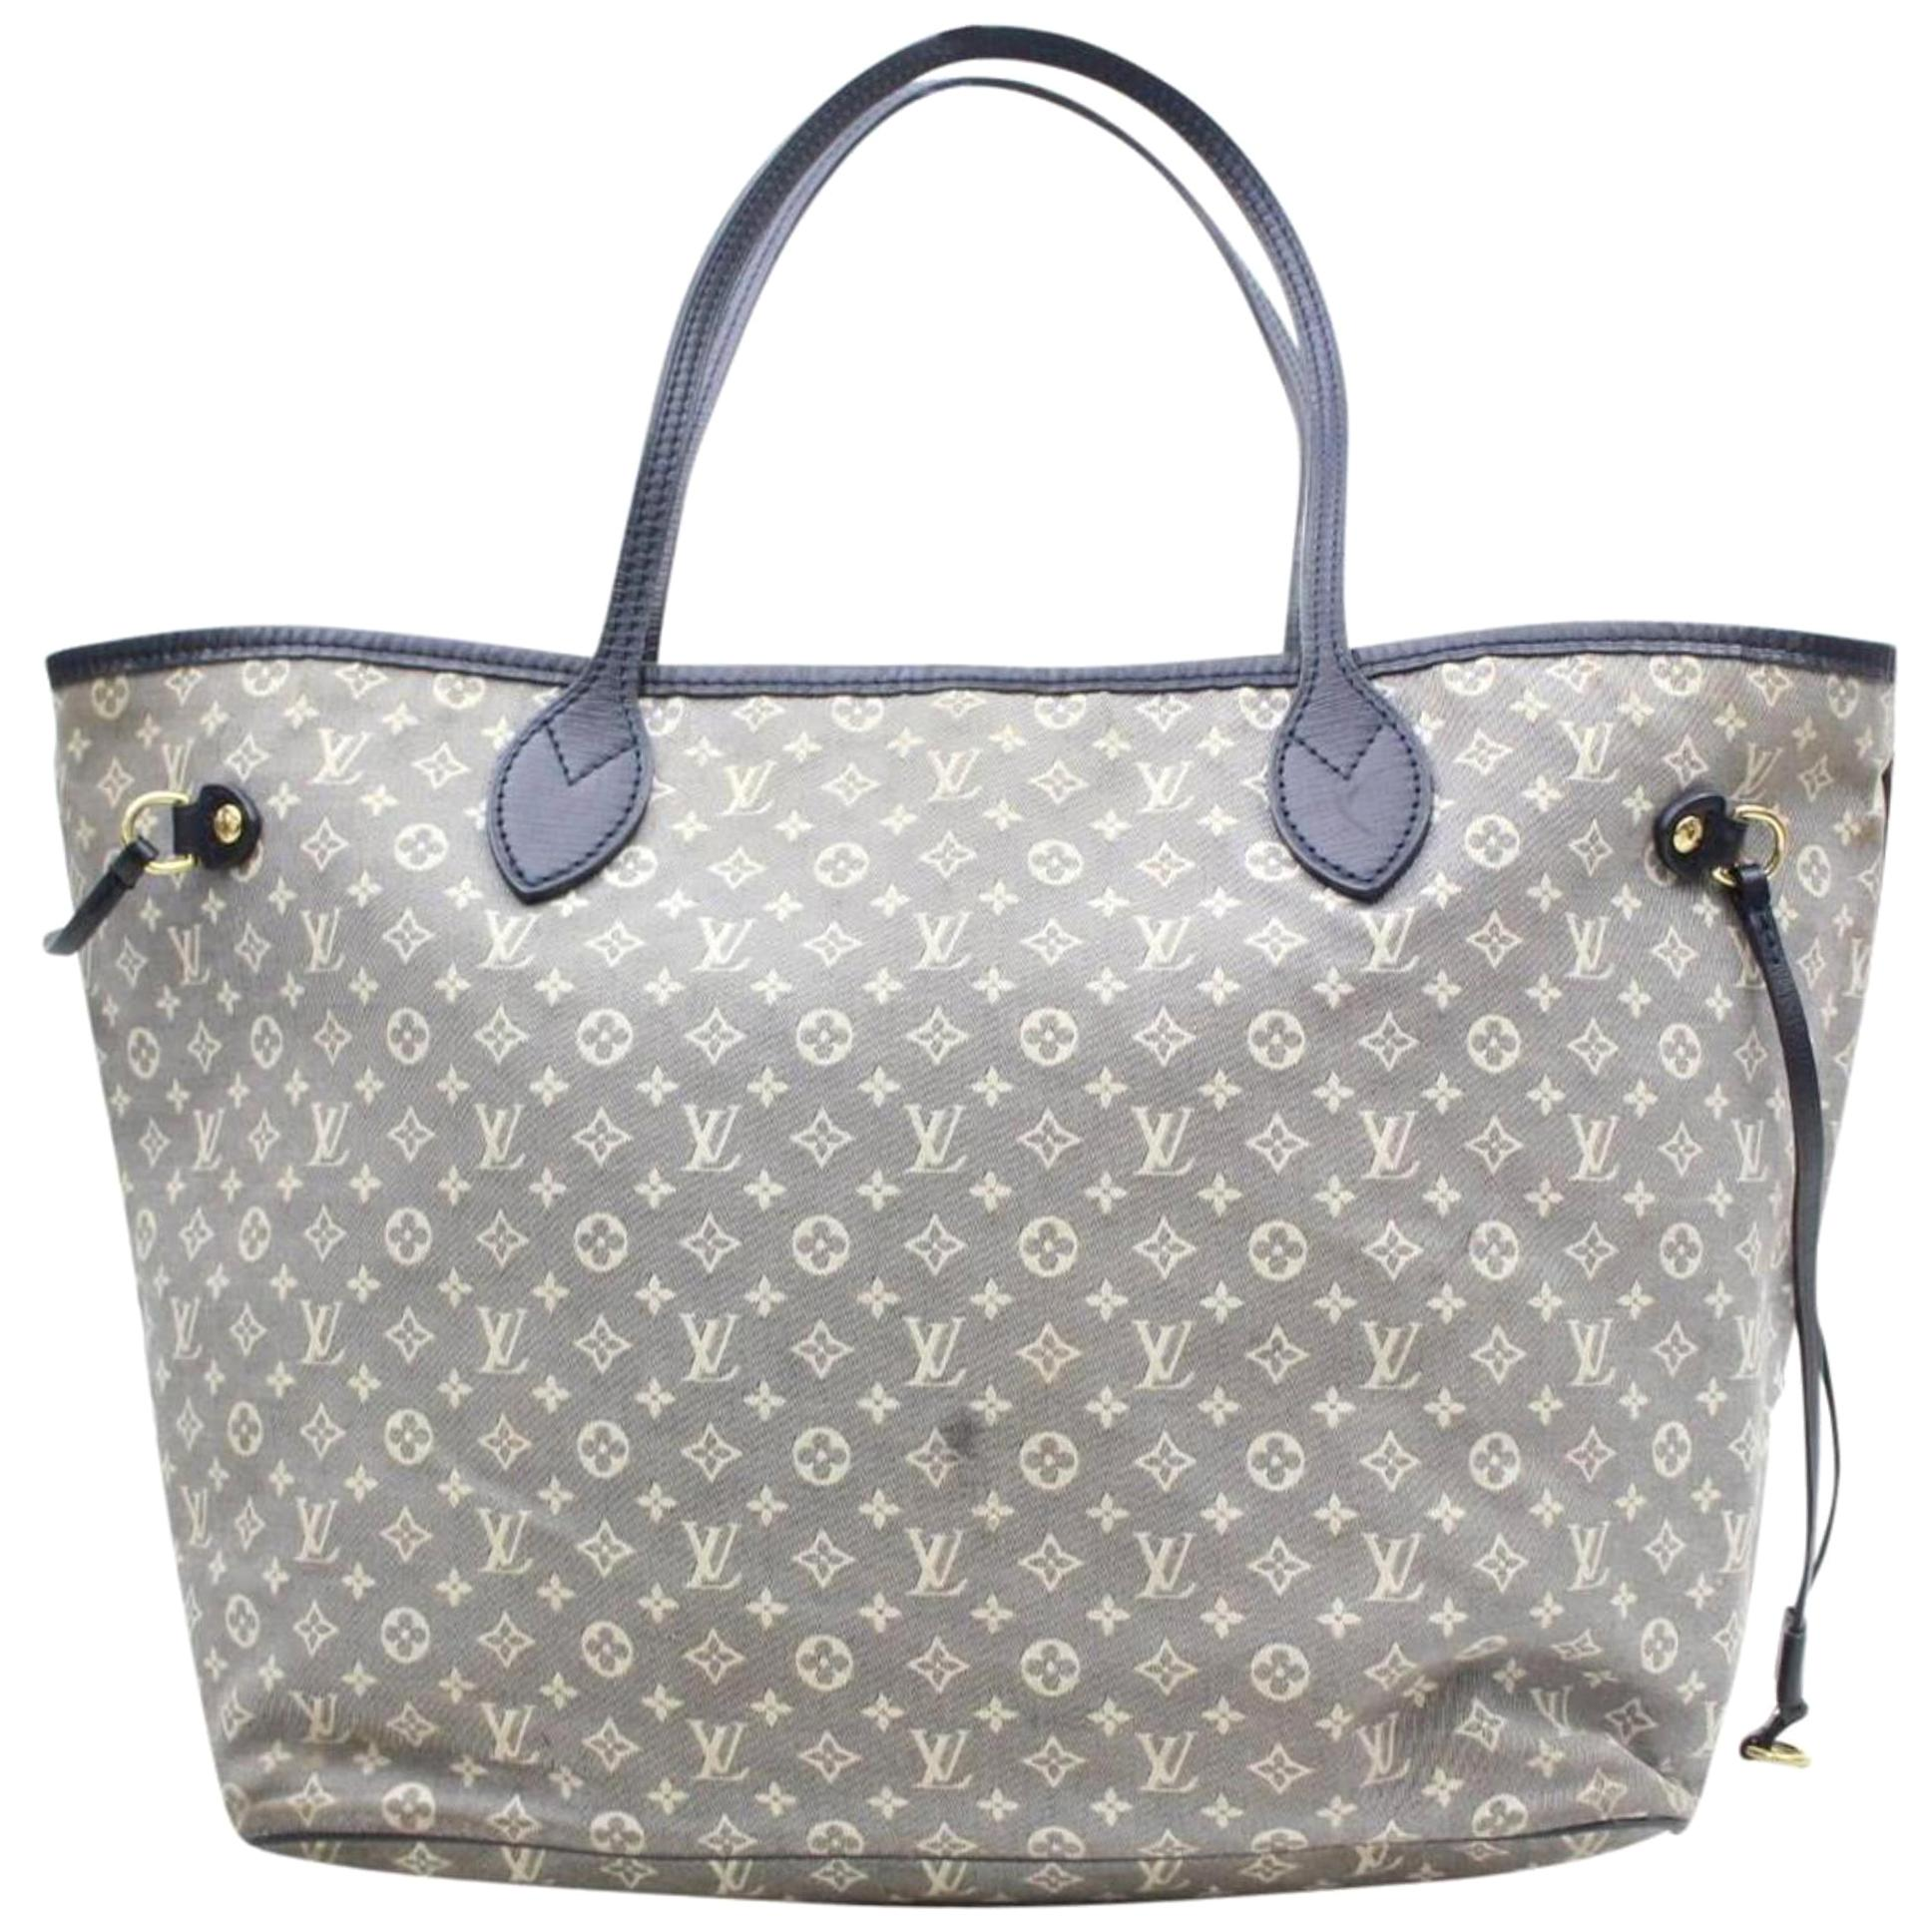 2231430caf09 Vintage Tote Bags For Sale in USA - 1stdibs - Page 4